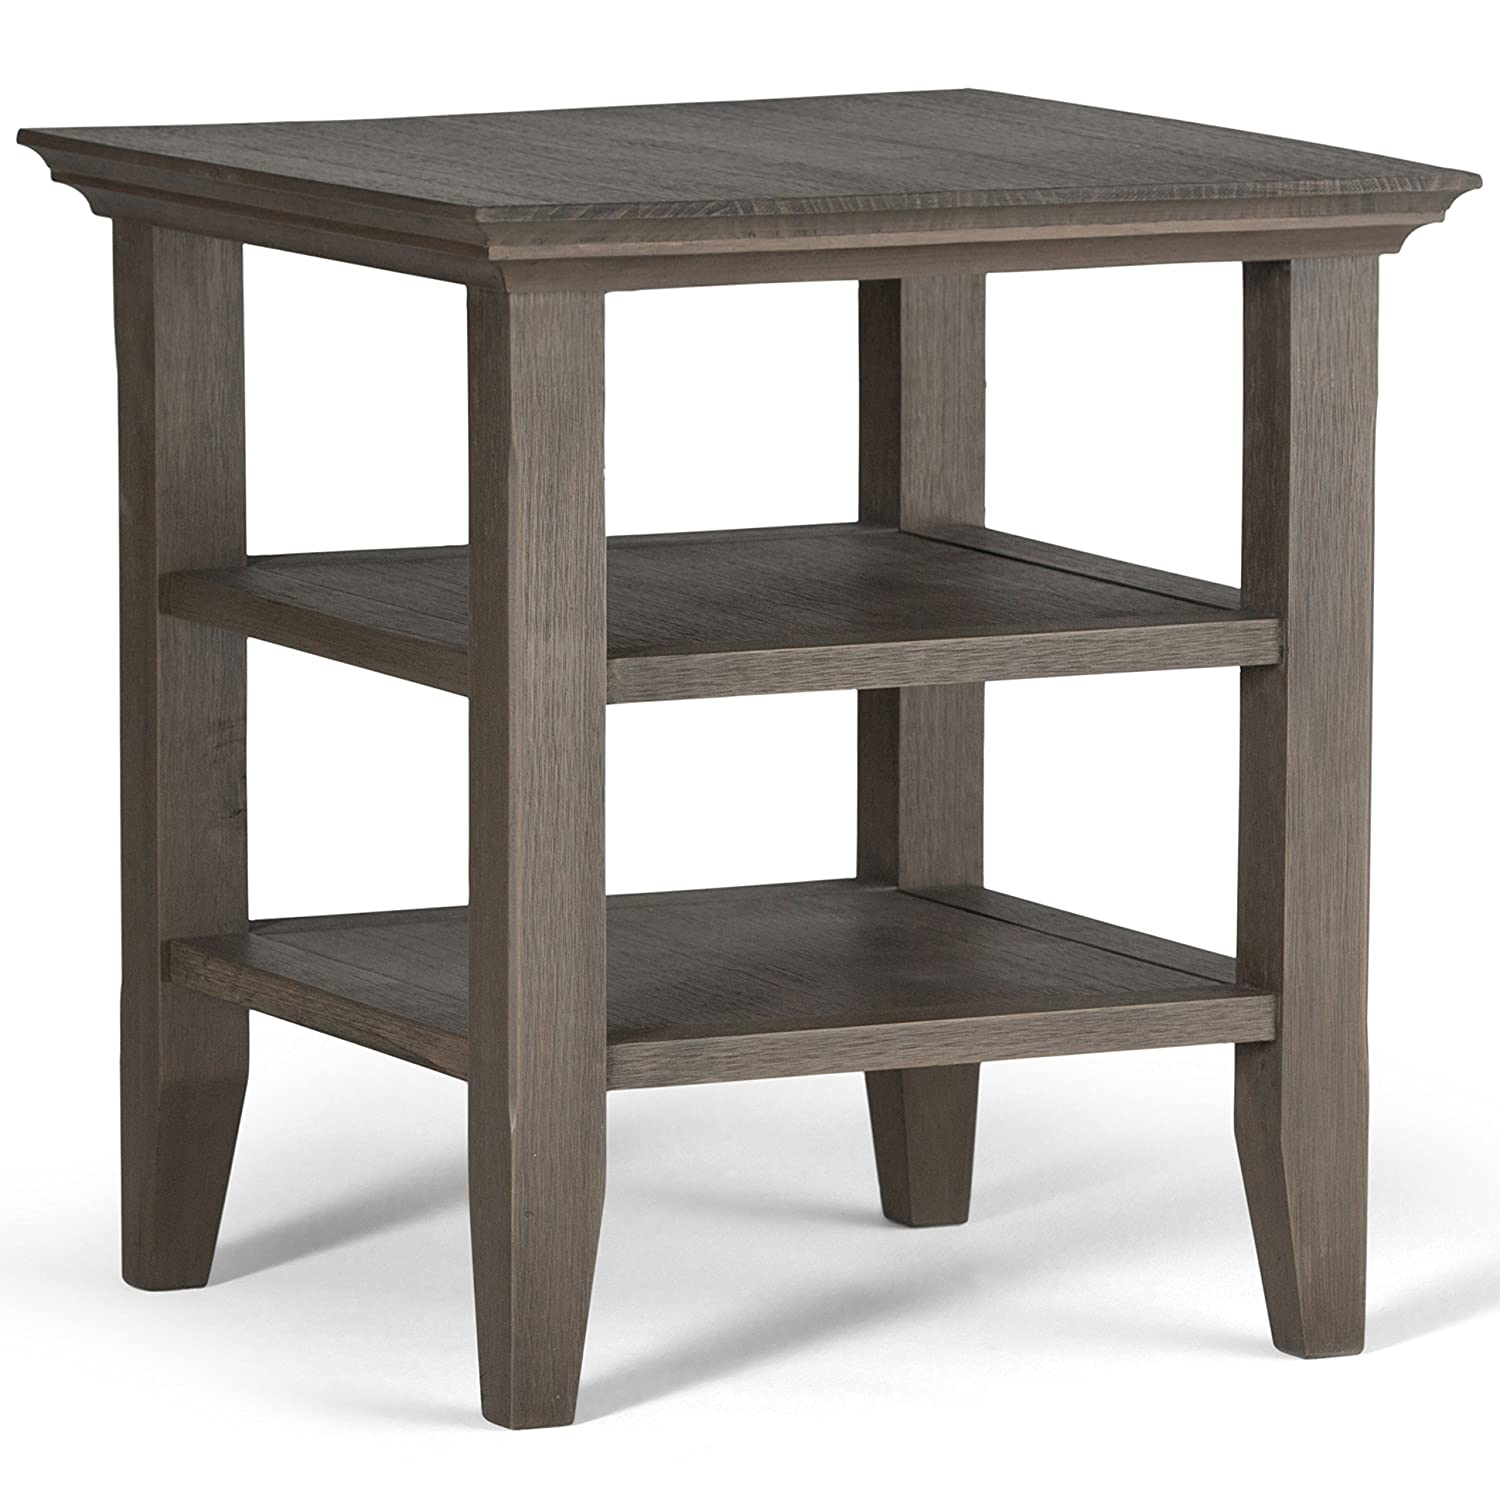 Simpli Home Acadian Solid Wood End Table, Black CCT Global AXWELL3-003-BL